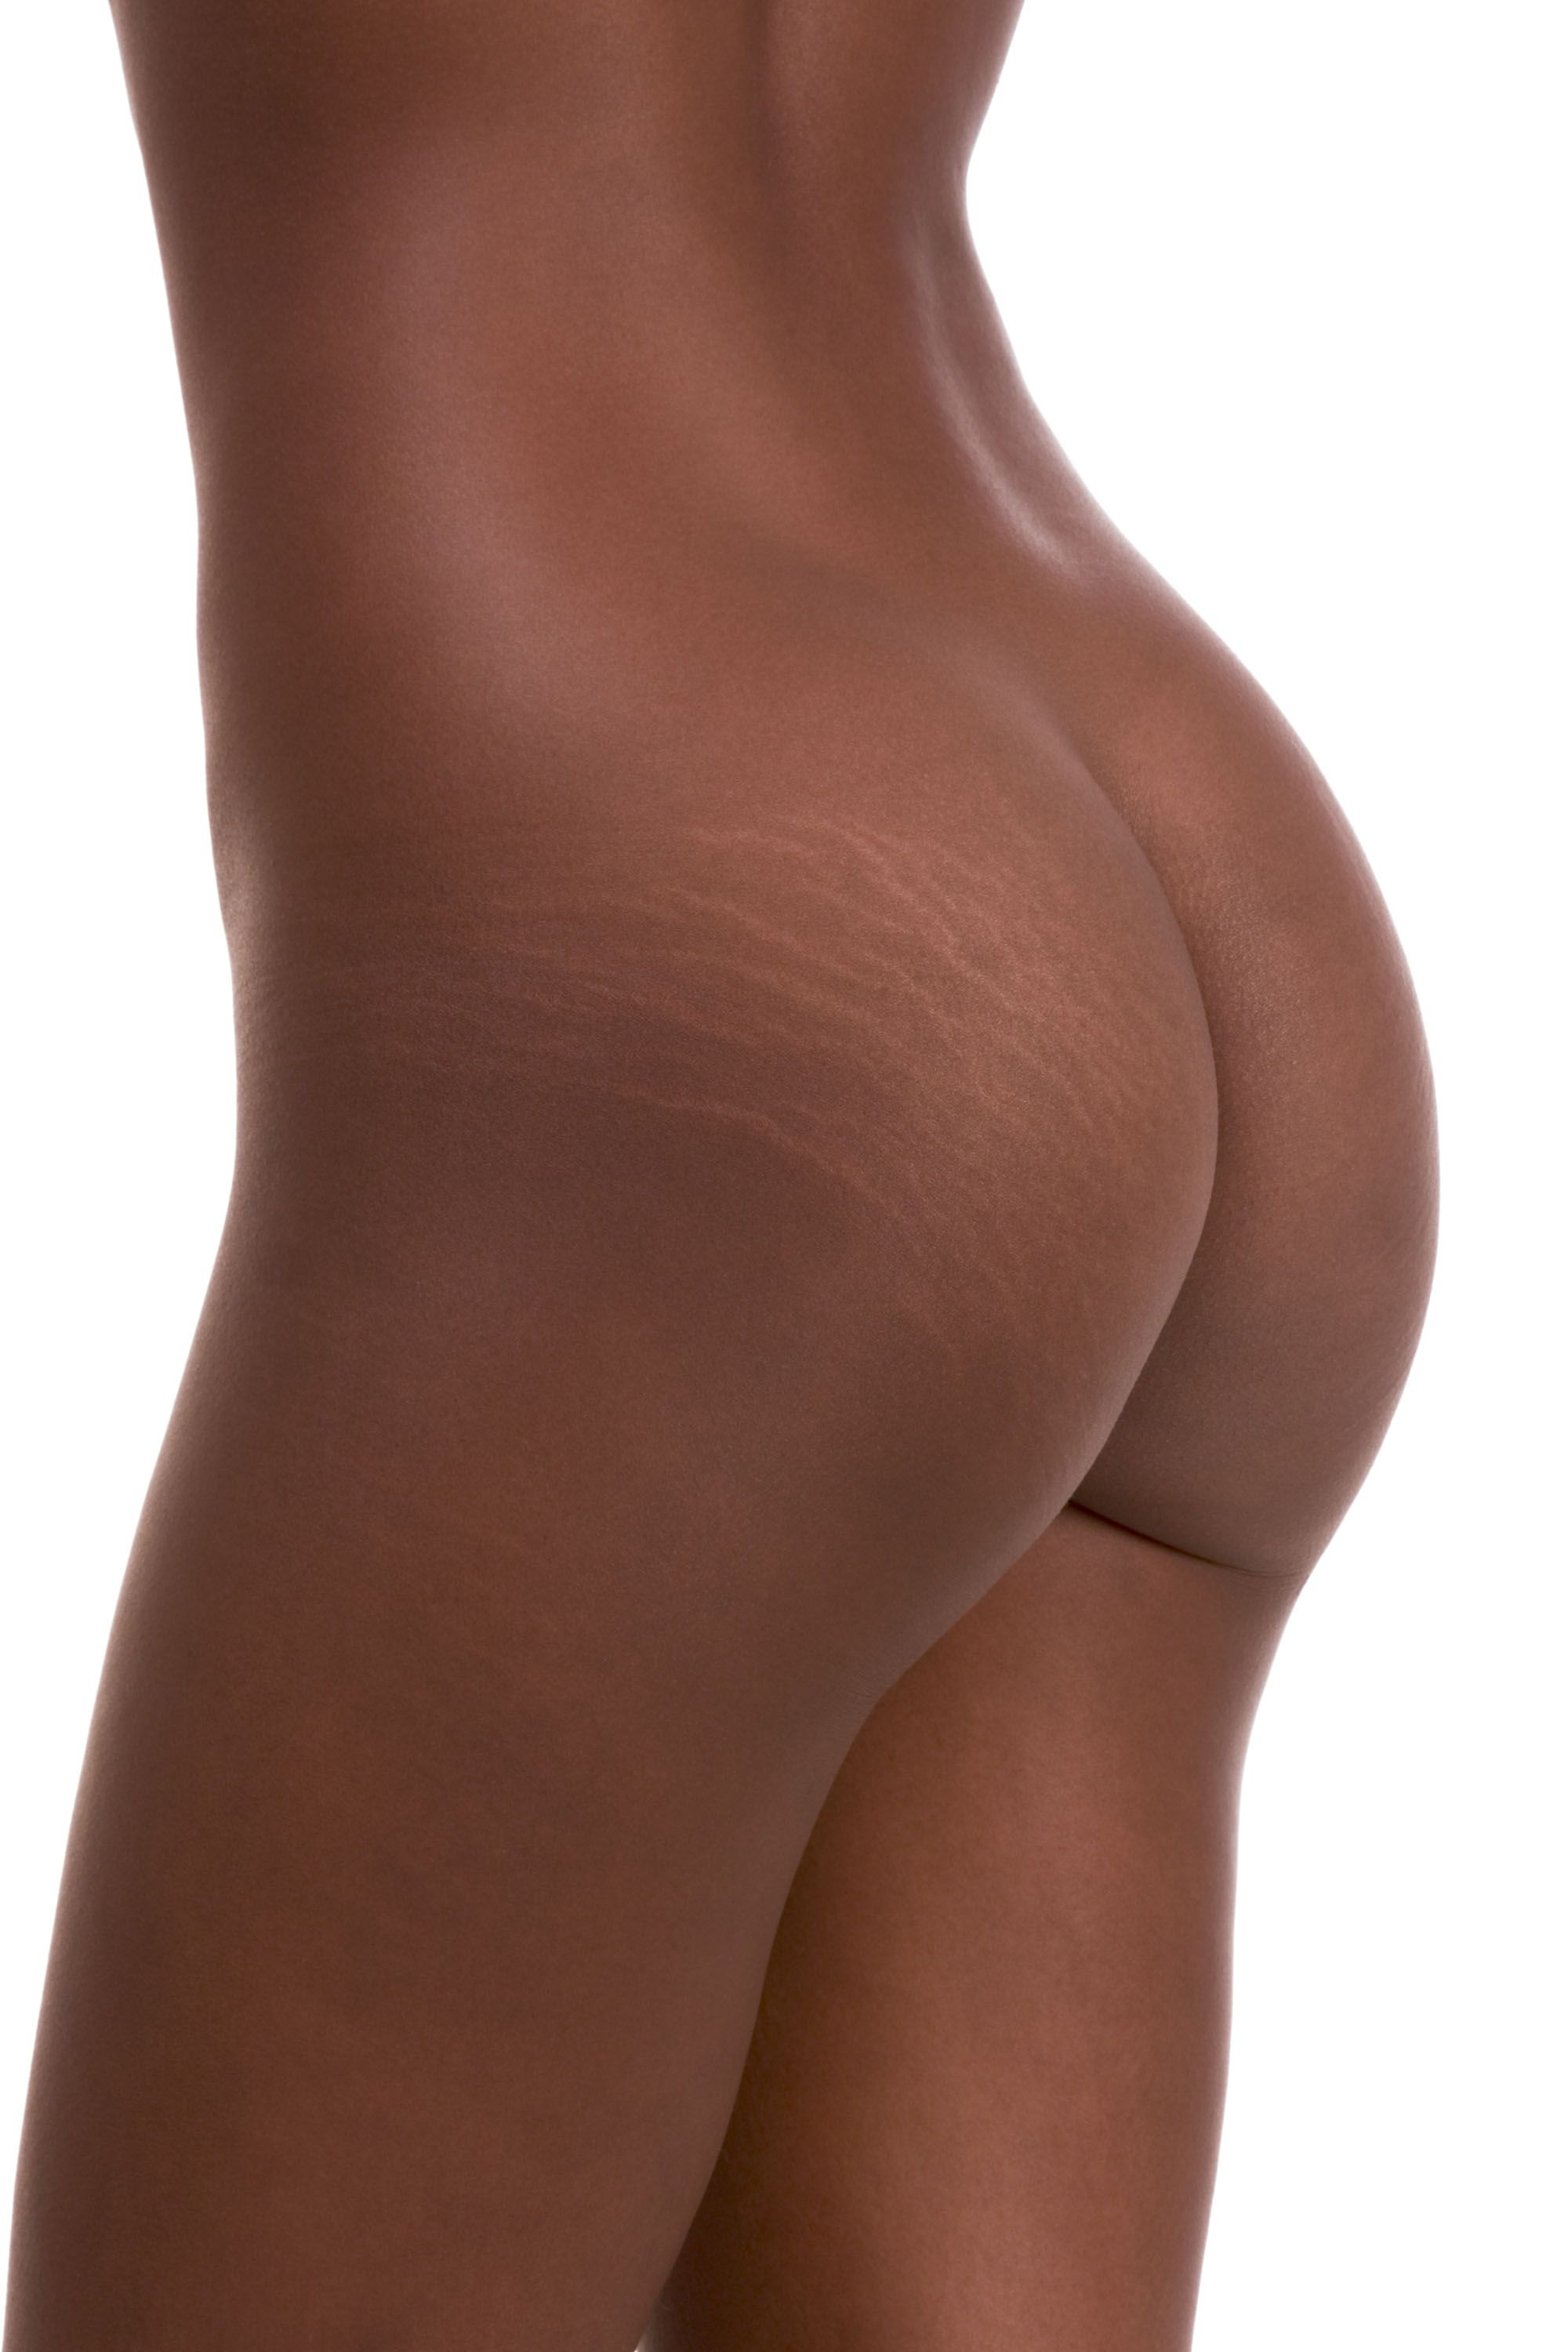 how to get rid of dark stretch marks on arms